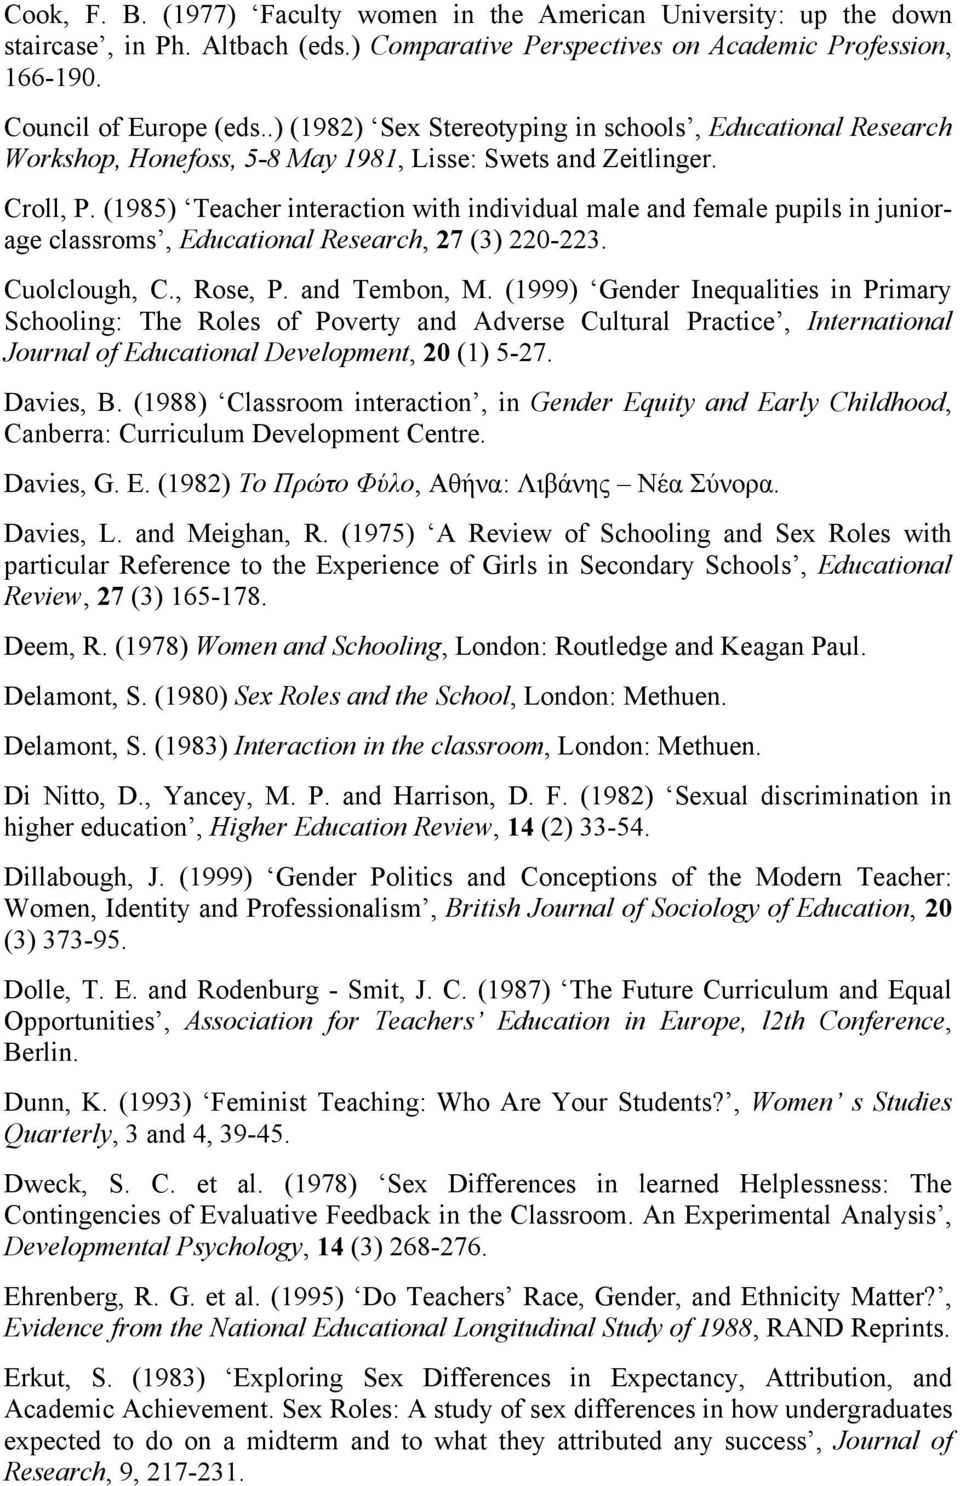 (1985) Teacher interaction with individual male and female pupils in juniorage classroms, Educational Research, 27 (3) 220-223. Cuolclough, C., Rose, P. and Tembon, M.